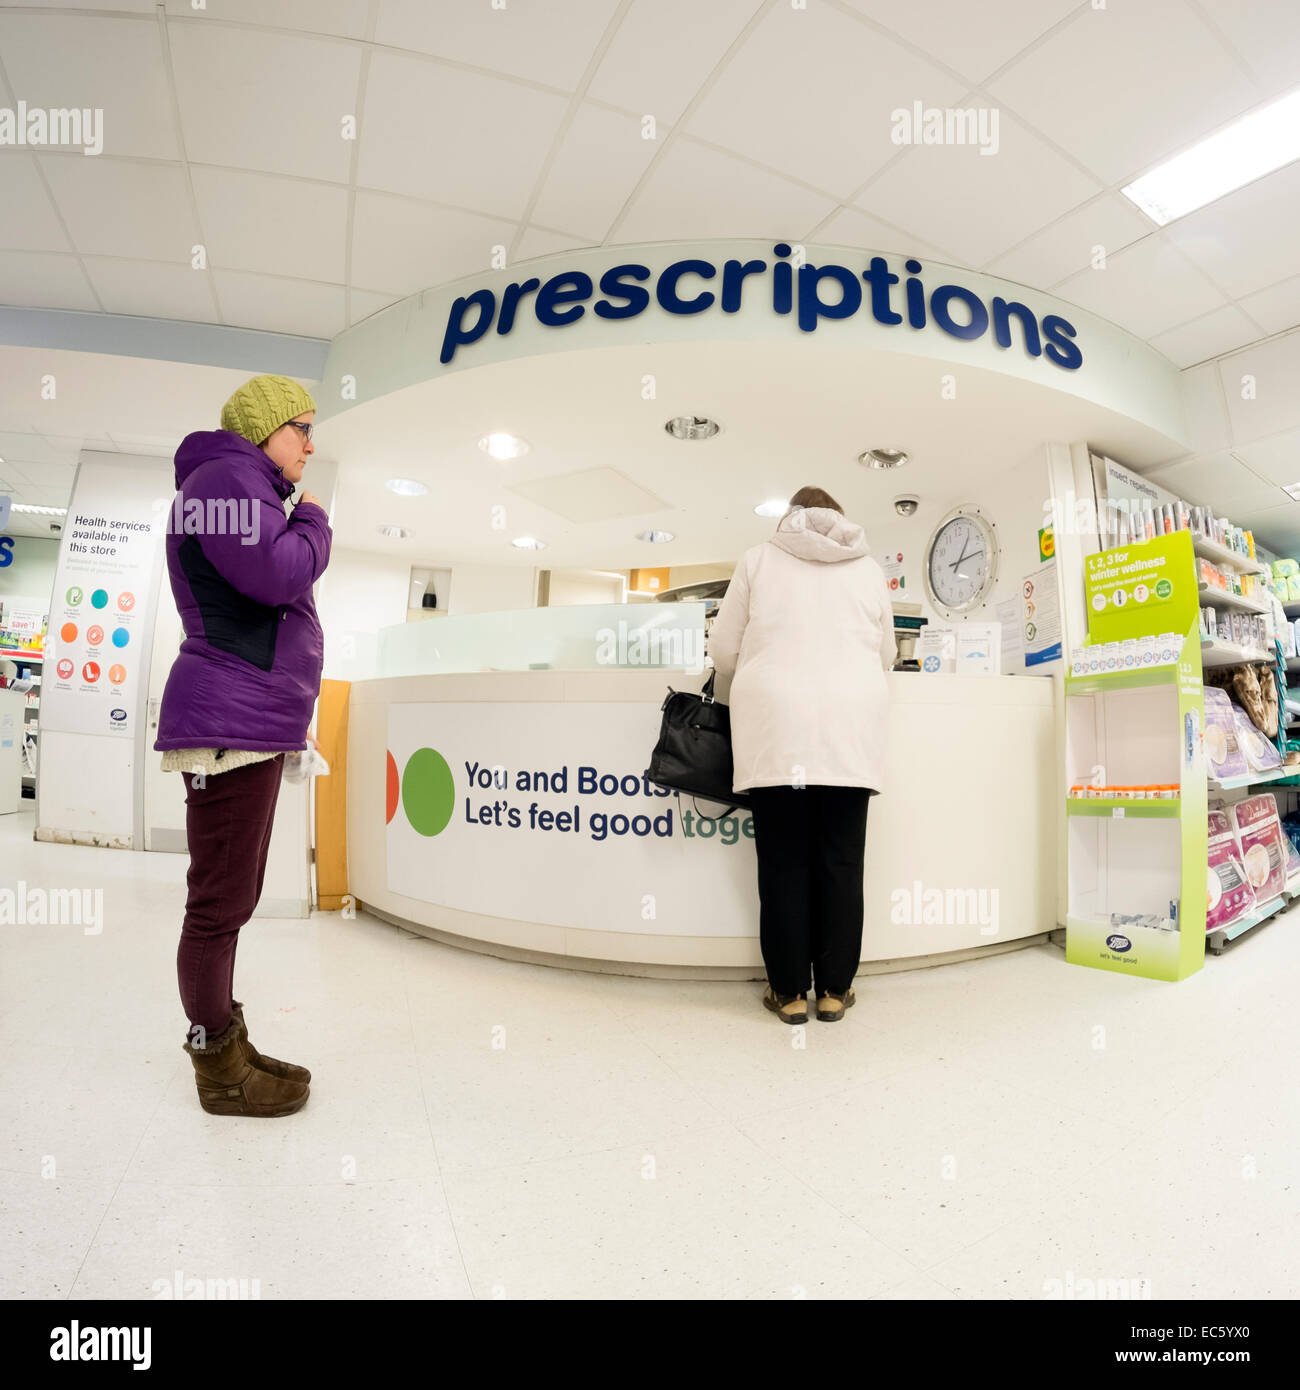 Fisheye shot of Prescriptions counter in a Boots chemist shop, UK. - Stock Image